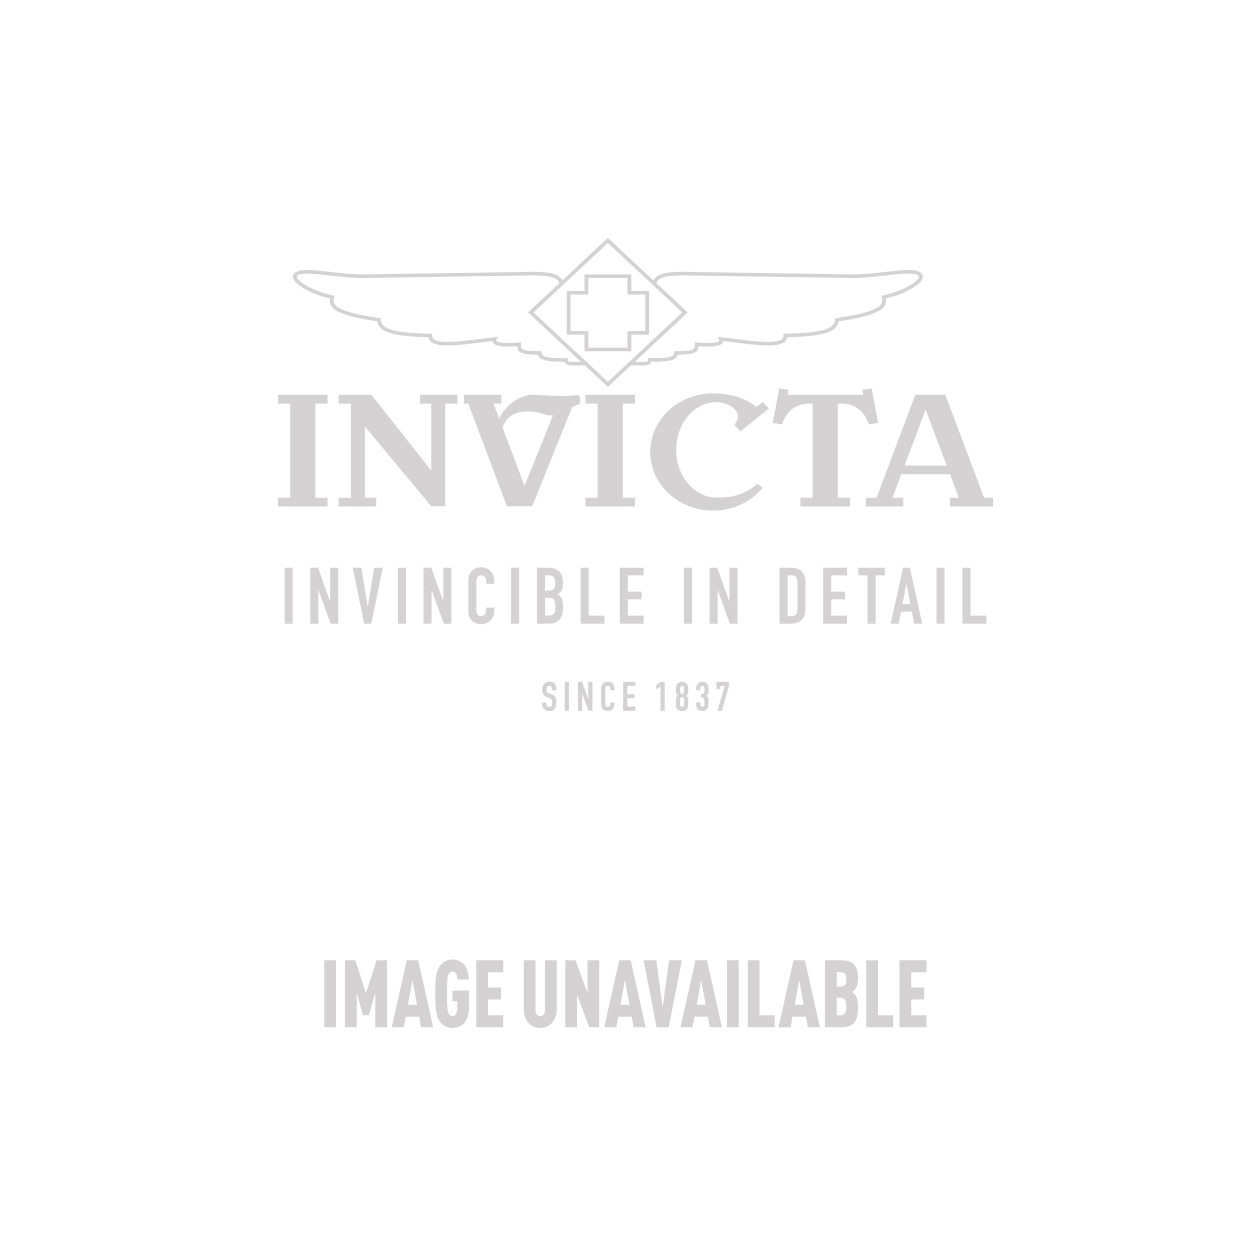 Invicta Specialty Swiss Movement Quartz Watch - Stainless Steel case Stainless Steel band - Model 18062